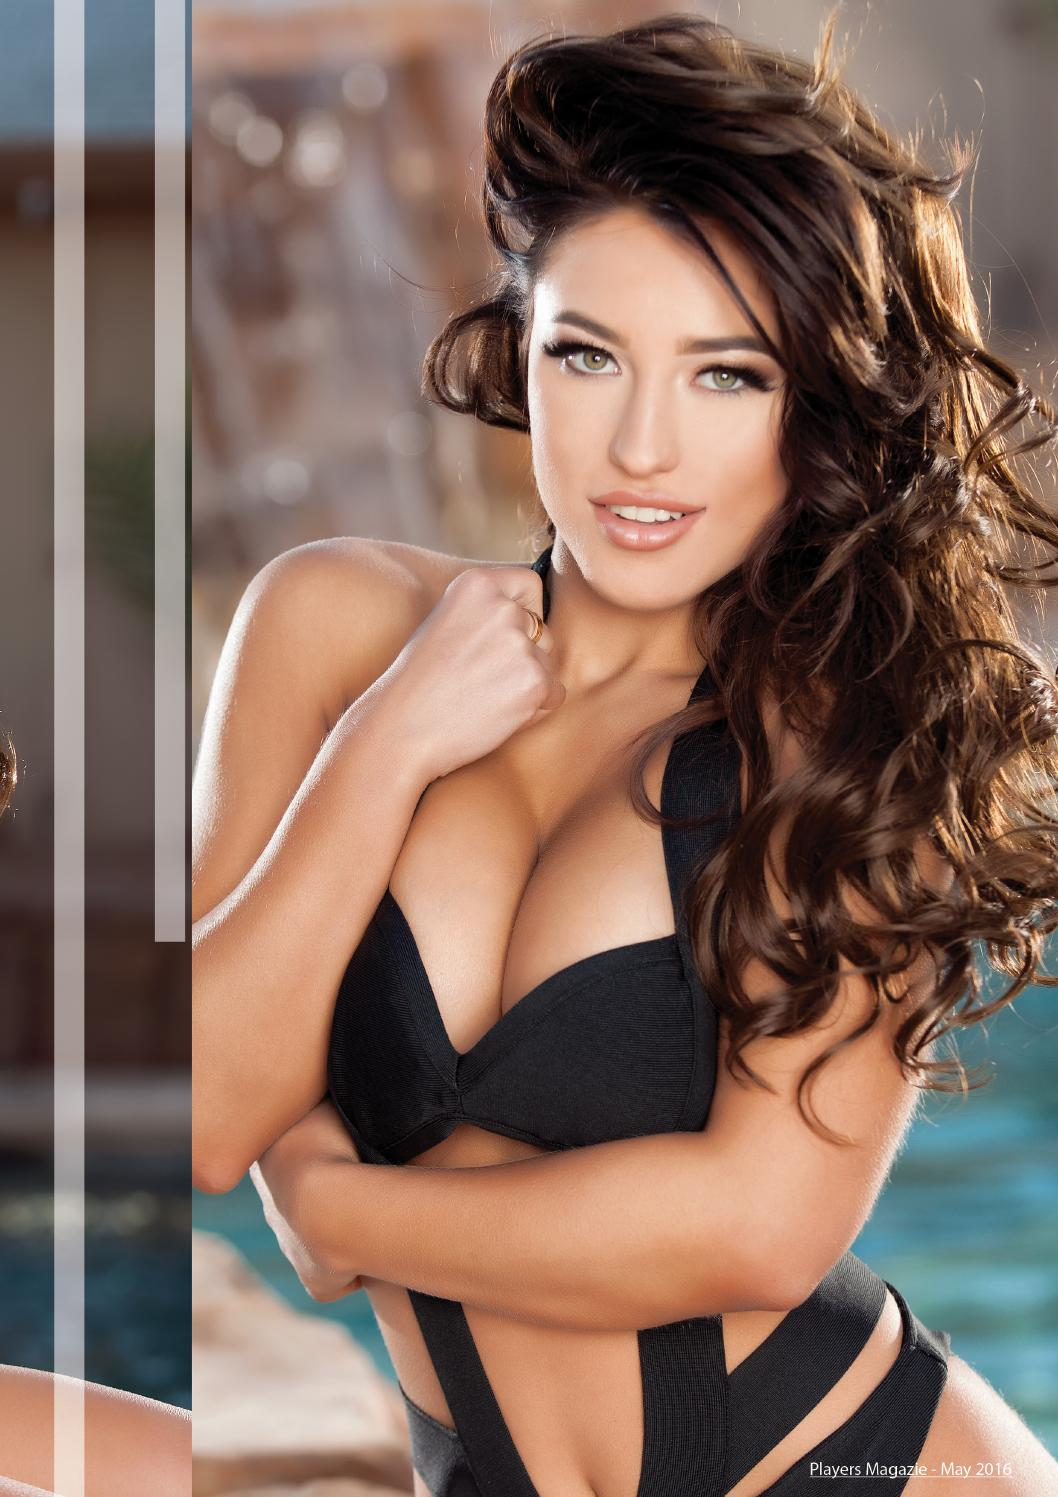 Pictures Stefanie Knight nudes (62 foto and video), Sexy, Sideboobs, Twitter, braless 2017